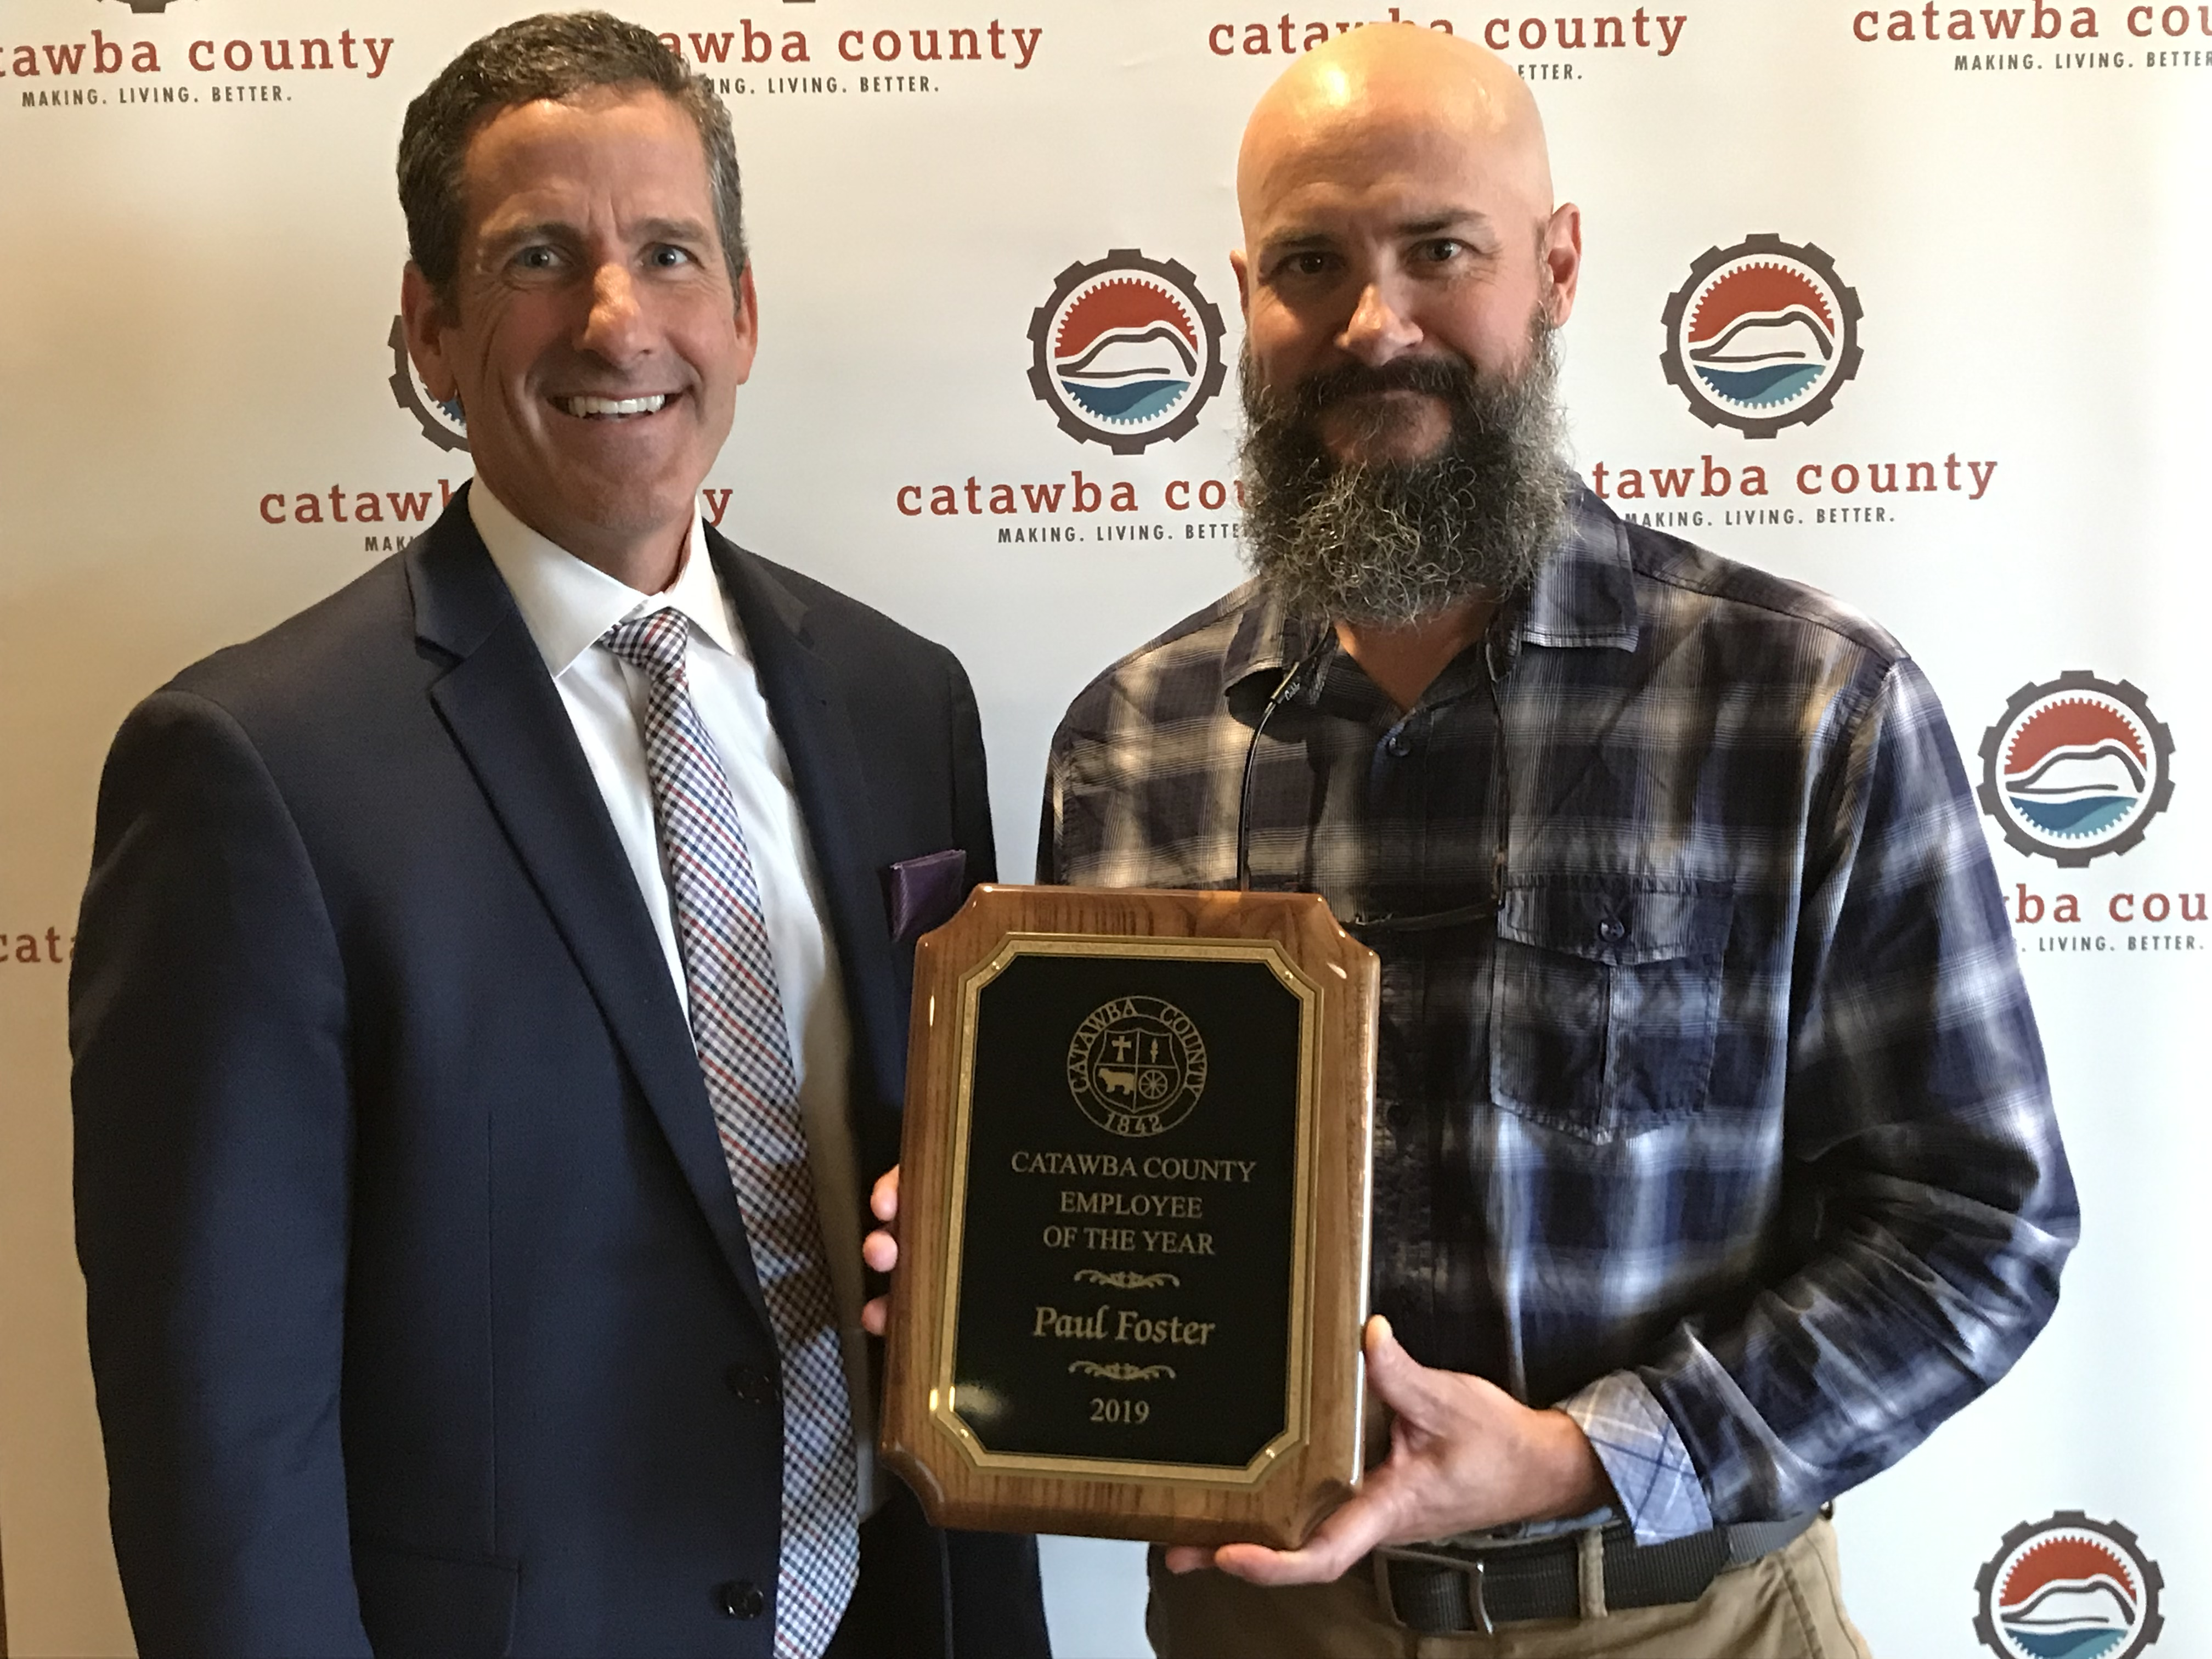 Catawba County Employee of the Year and Team Awards Announced